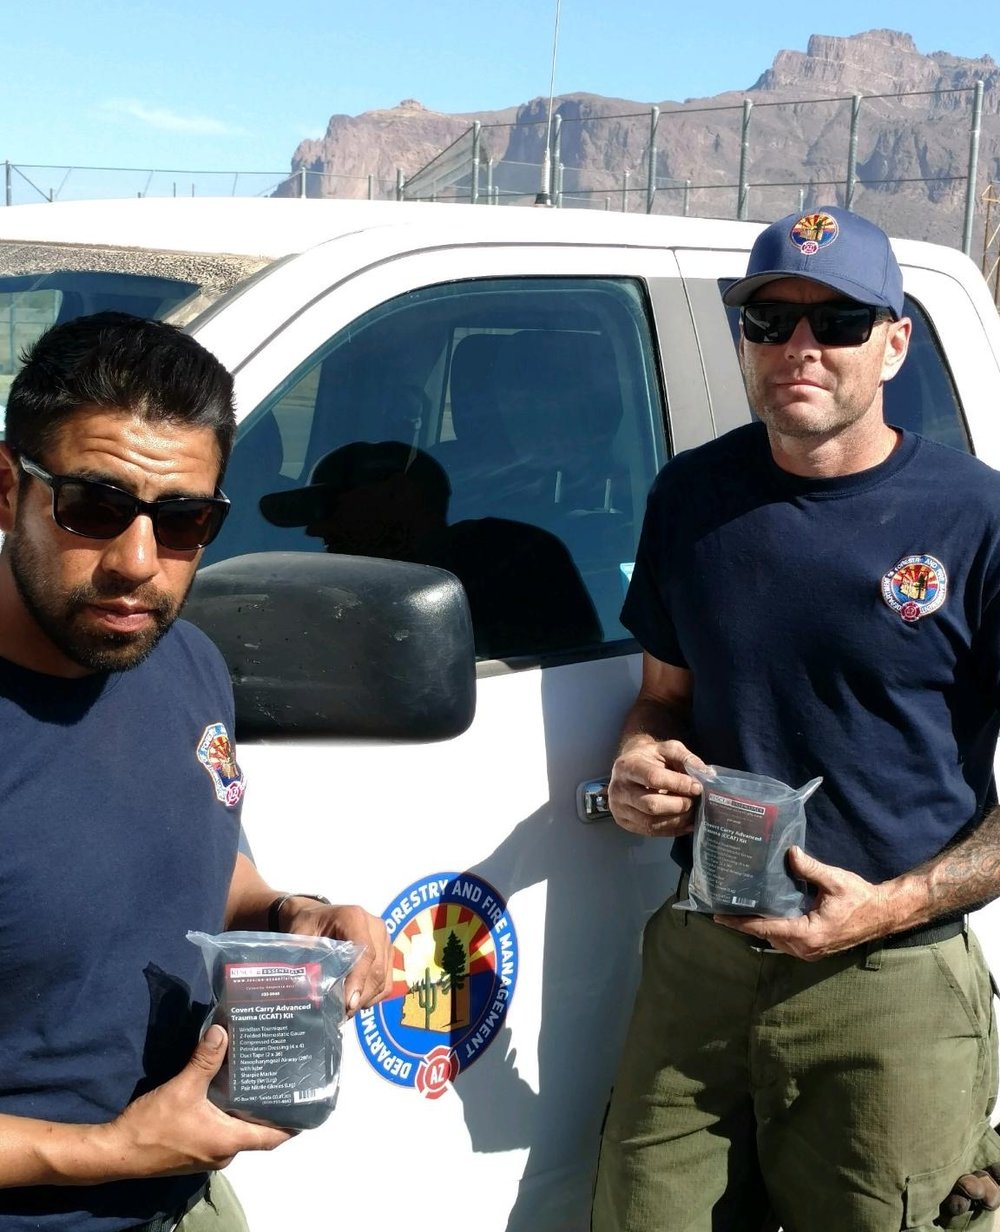 Phoenix Crew with Advanced Trauma Kits